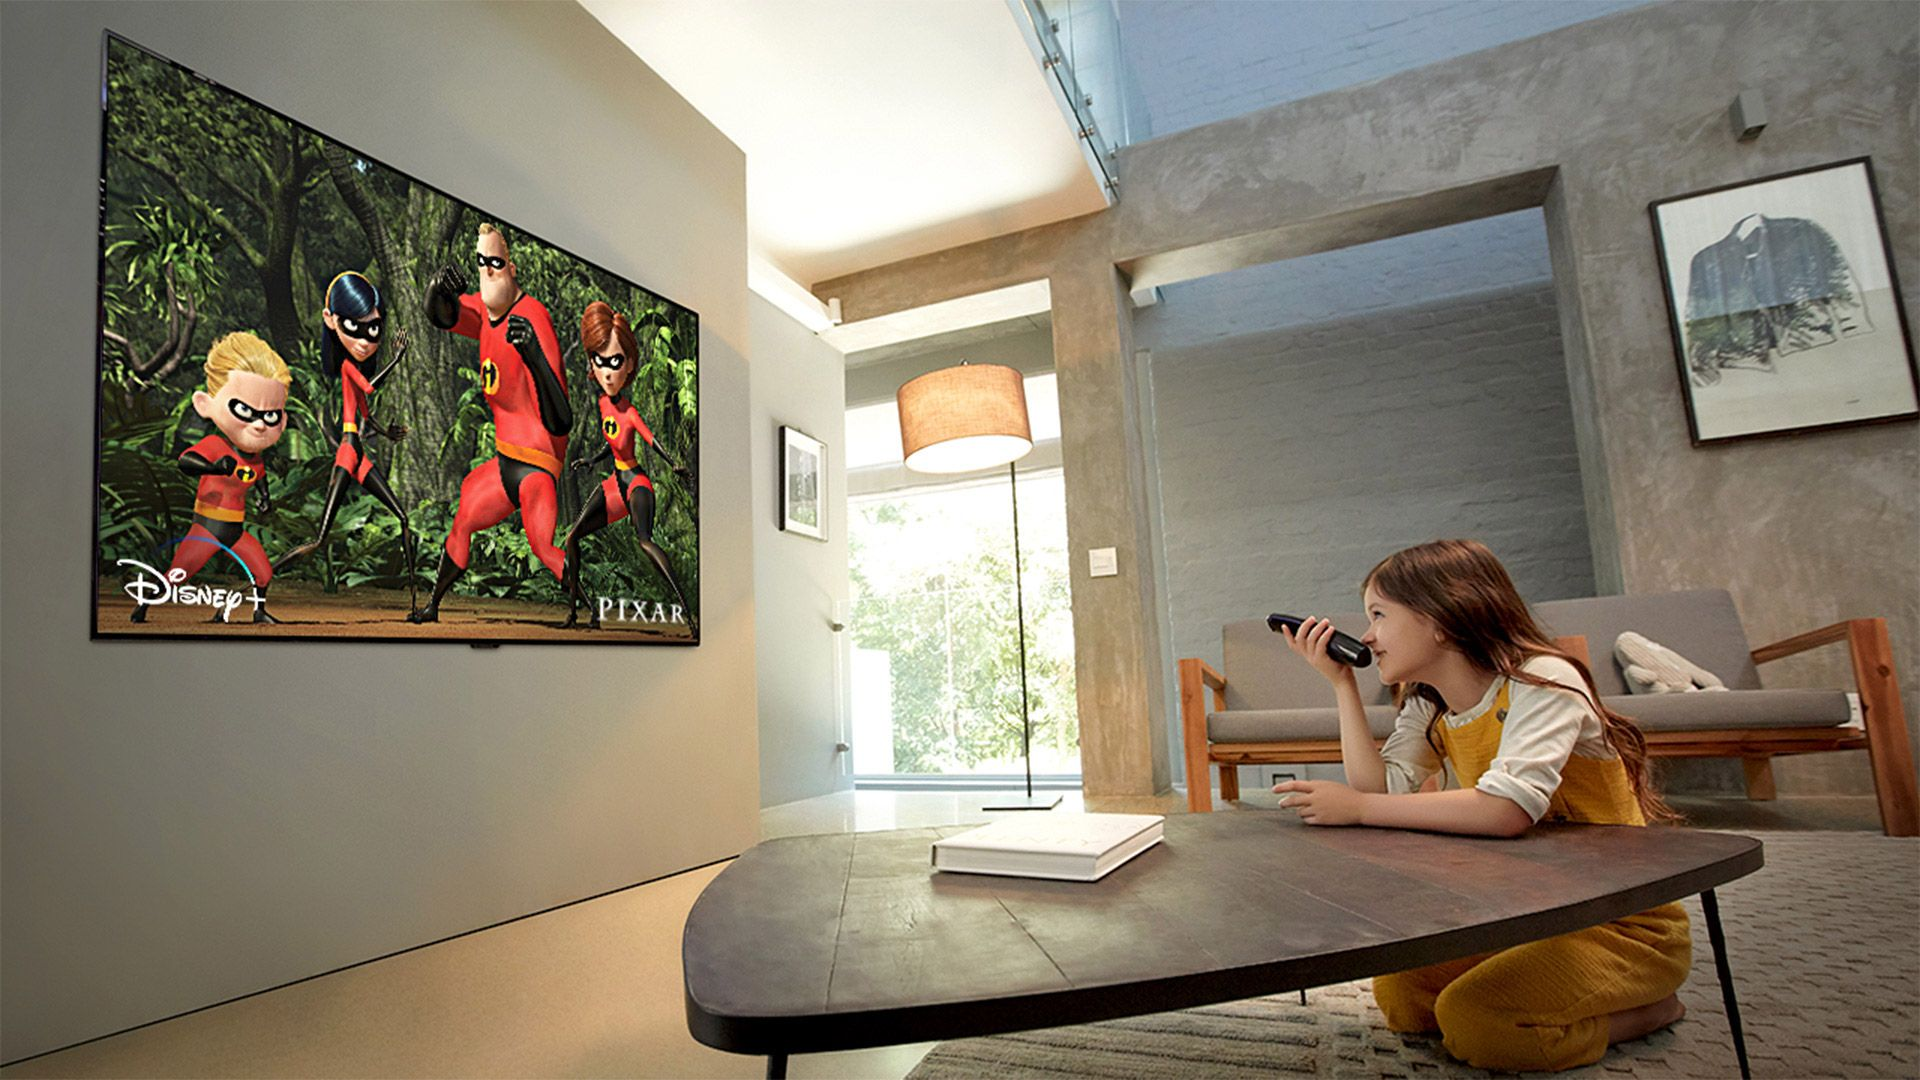 Stay Home and Level Up Your Home Entertainment Experience With These Gadgets